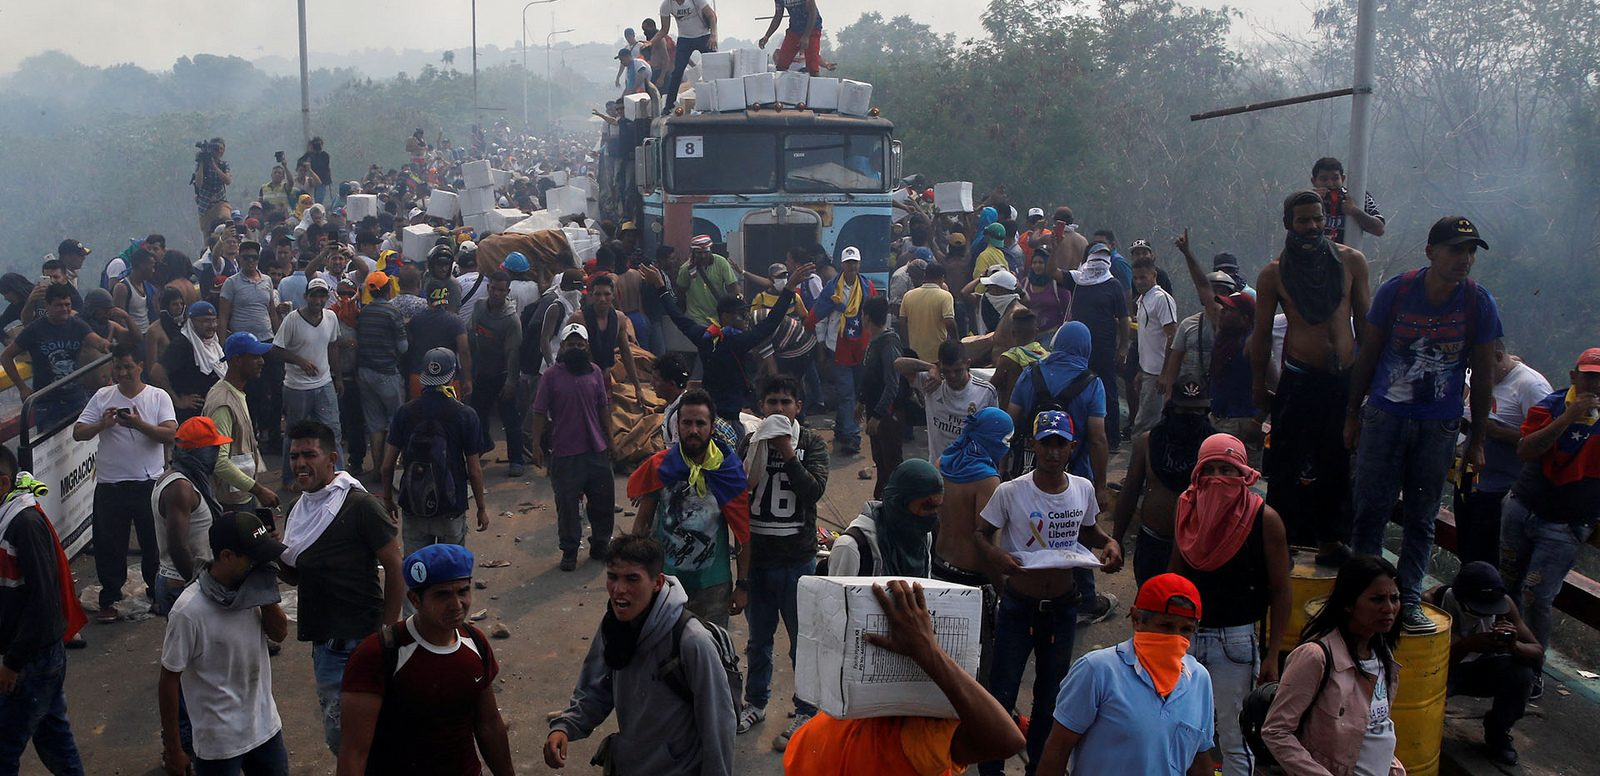 Claims That Venezuelan Military Burned Aid Truck Exposed As Imperialist Propaganda